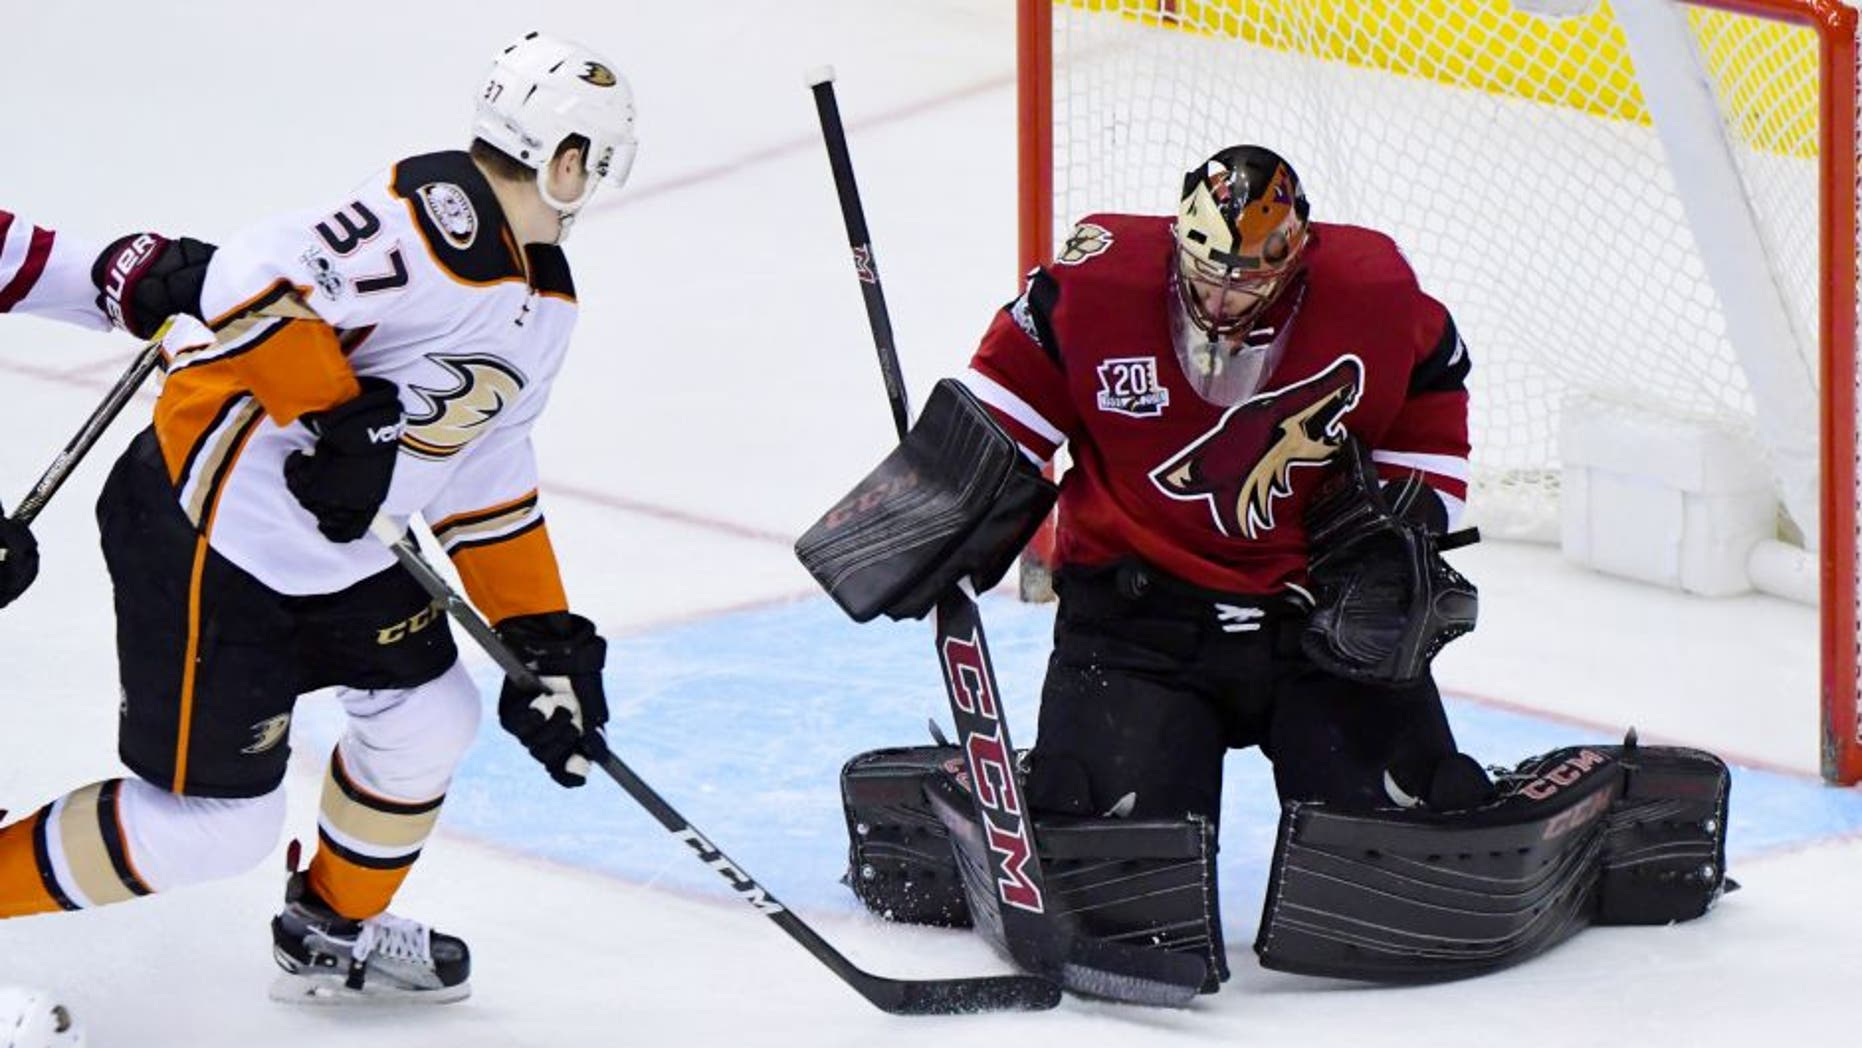 Feb 20, 2017; Glendale, AZ, USA; Arizona Coyotes goalie Mike Smith (41) makes a save against Anaheim Ducks left wing Nick Ritchie (37) during the second period at Gila River Arena. Mandatory Credit: Matt Kartozian-USA TODAY Sports